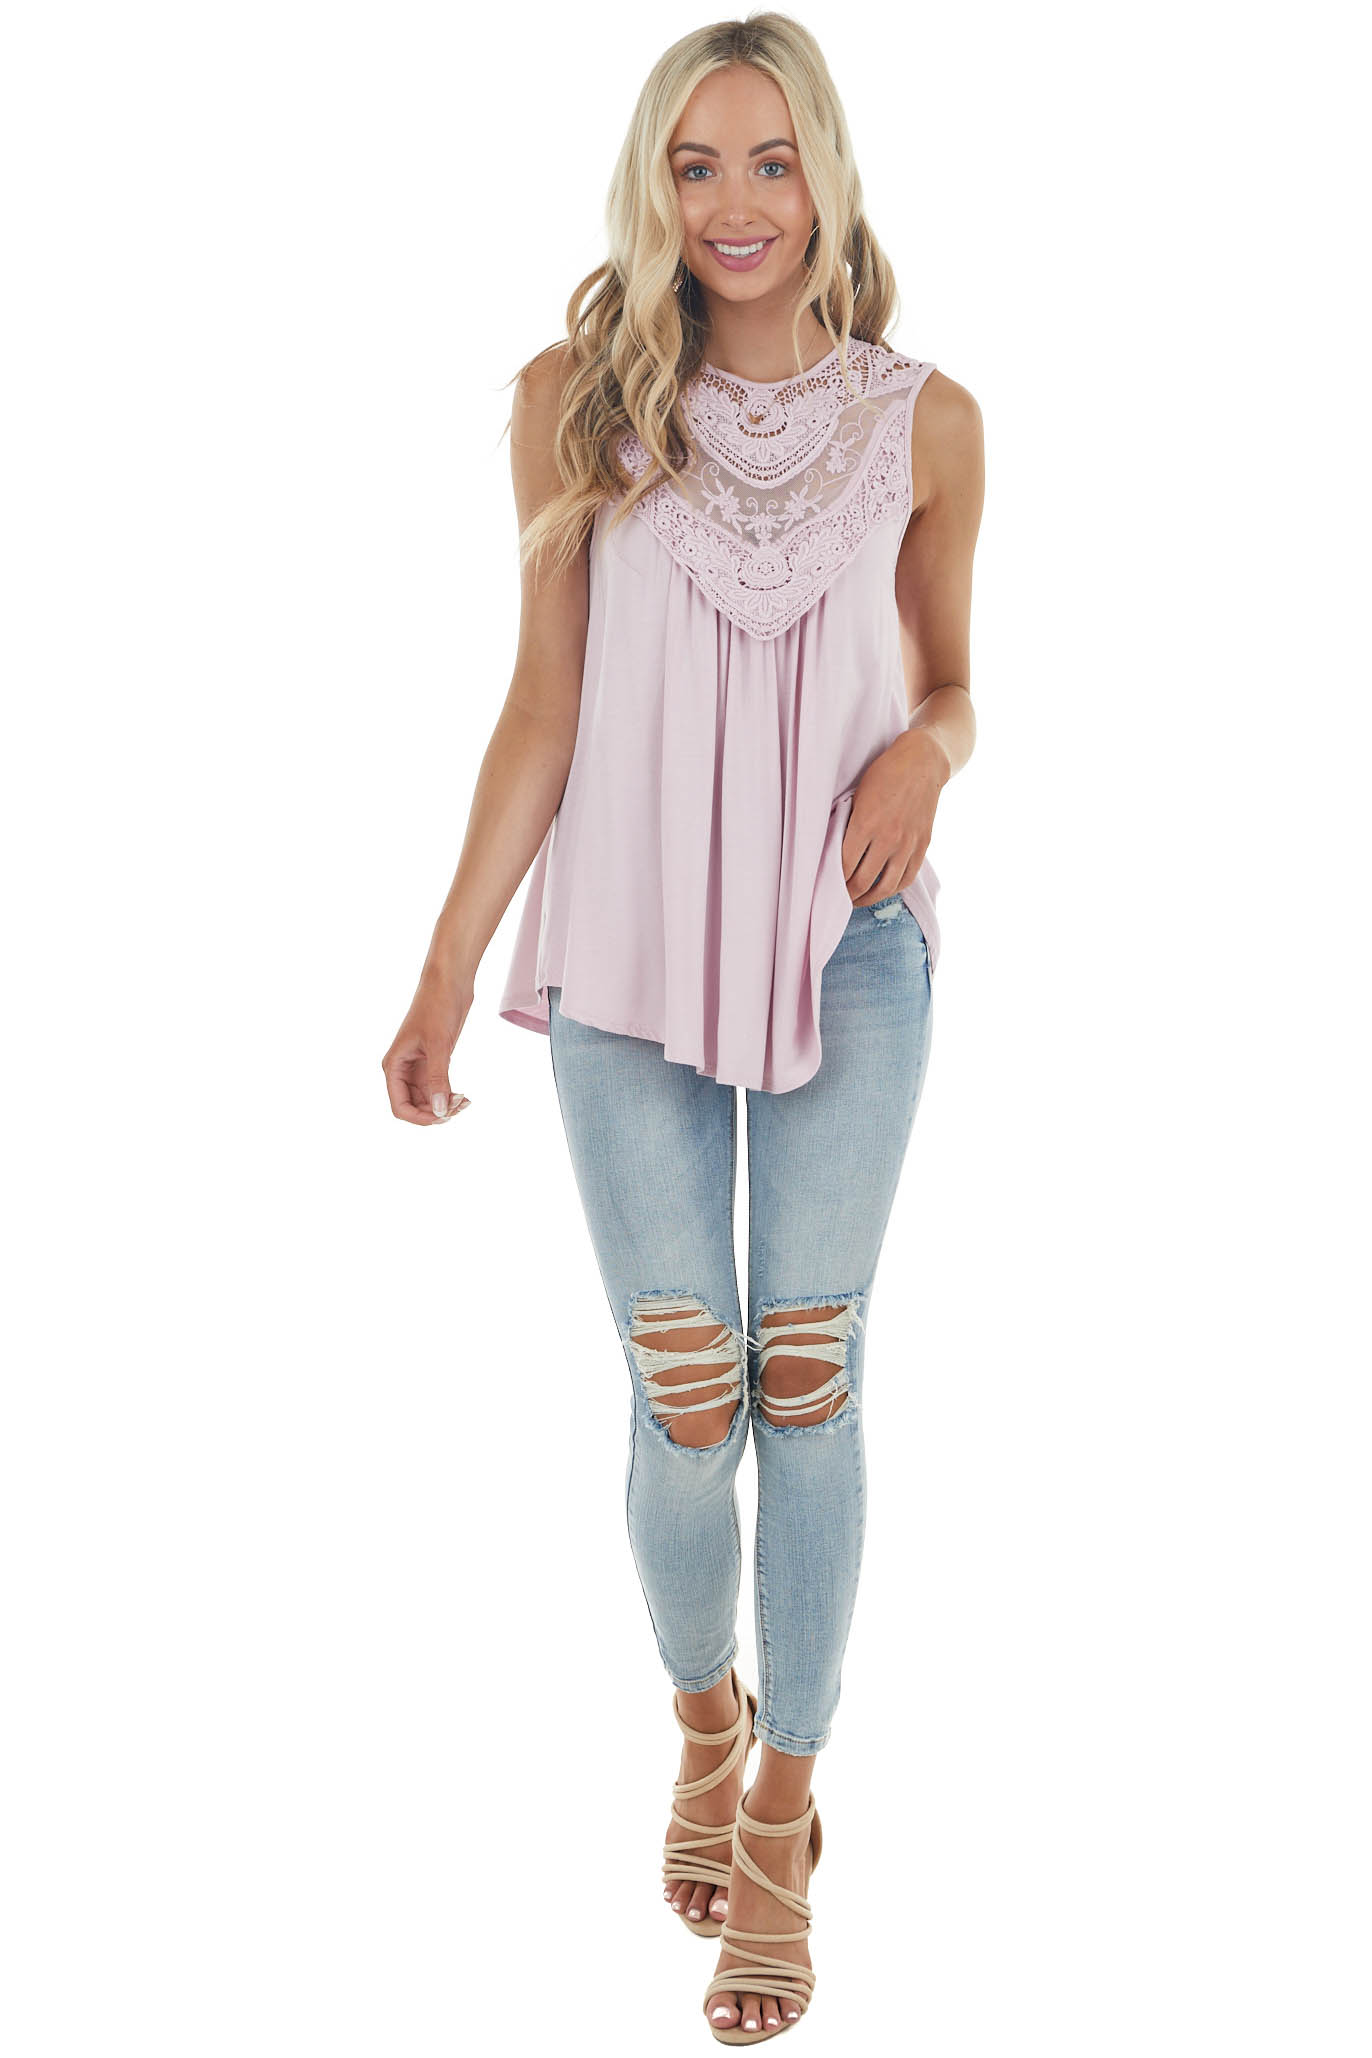 Dusty Blush Flowy Sleeveless Top with Sheer Crochet Detail